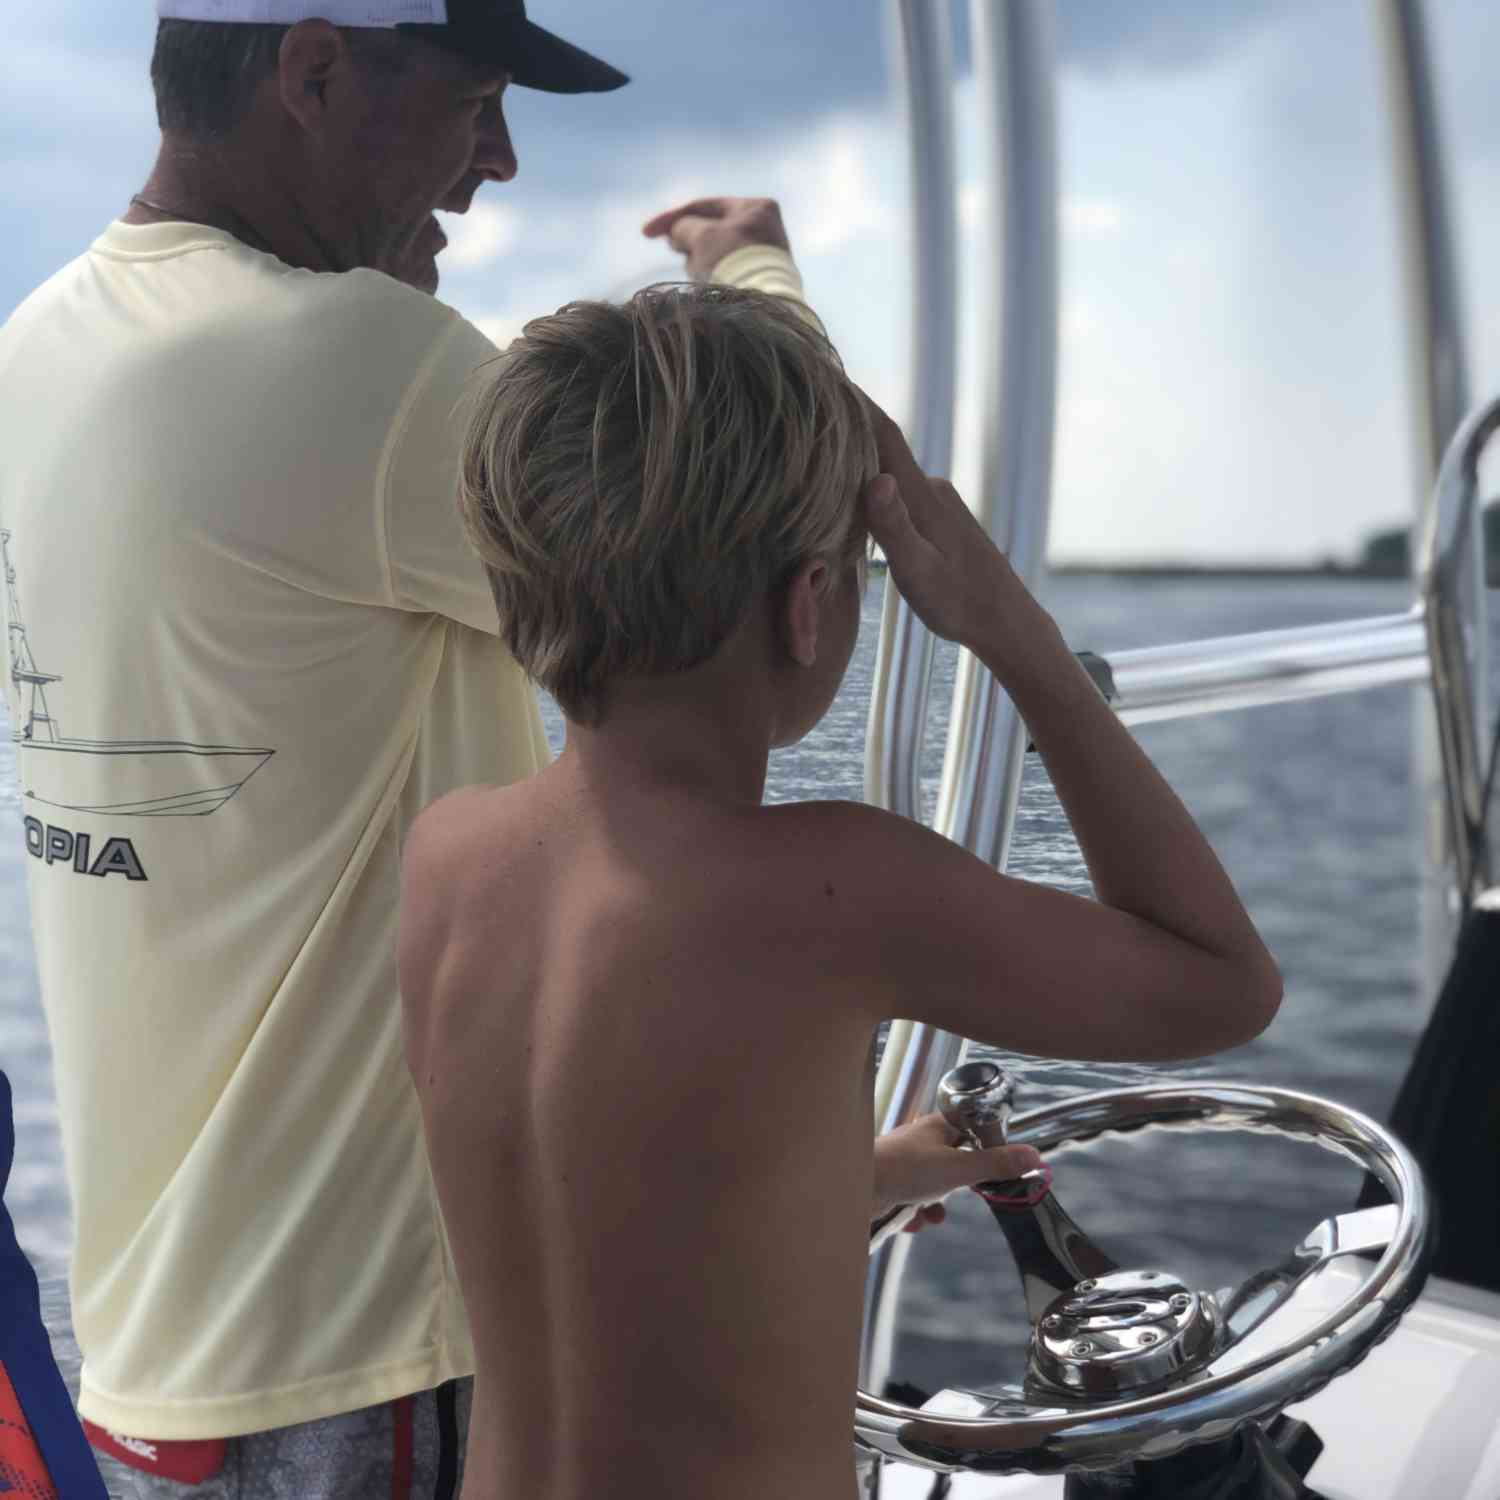 Title: Captain in Training - On board their Sportsman Tournament 214 Bay Boat - Location: Swansboro, NC. Participating in the Photo Contest #SportsmanJuly2020